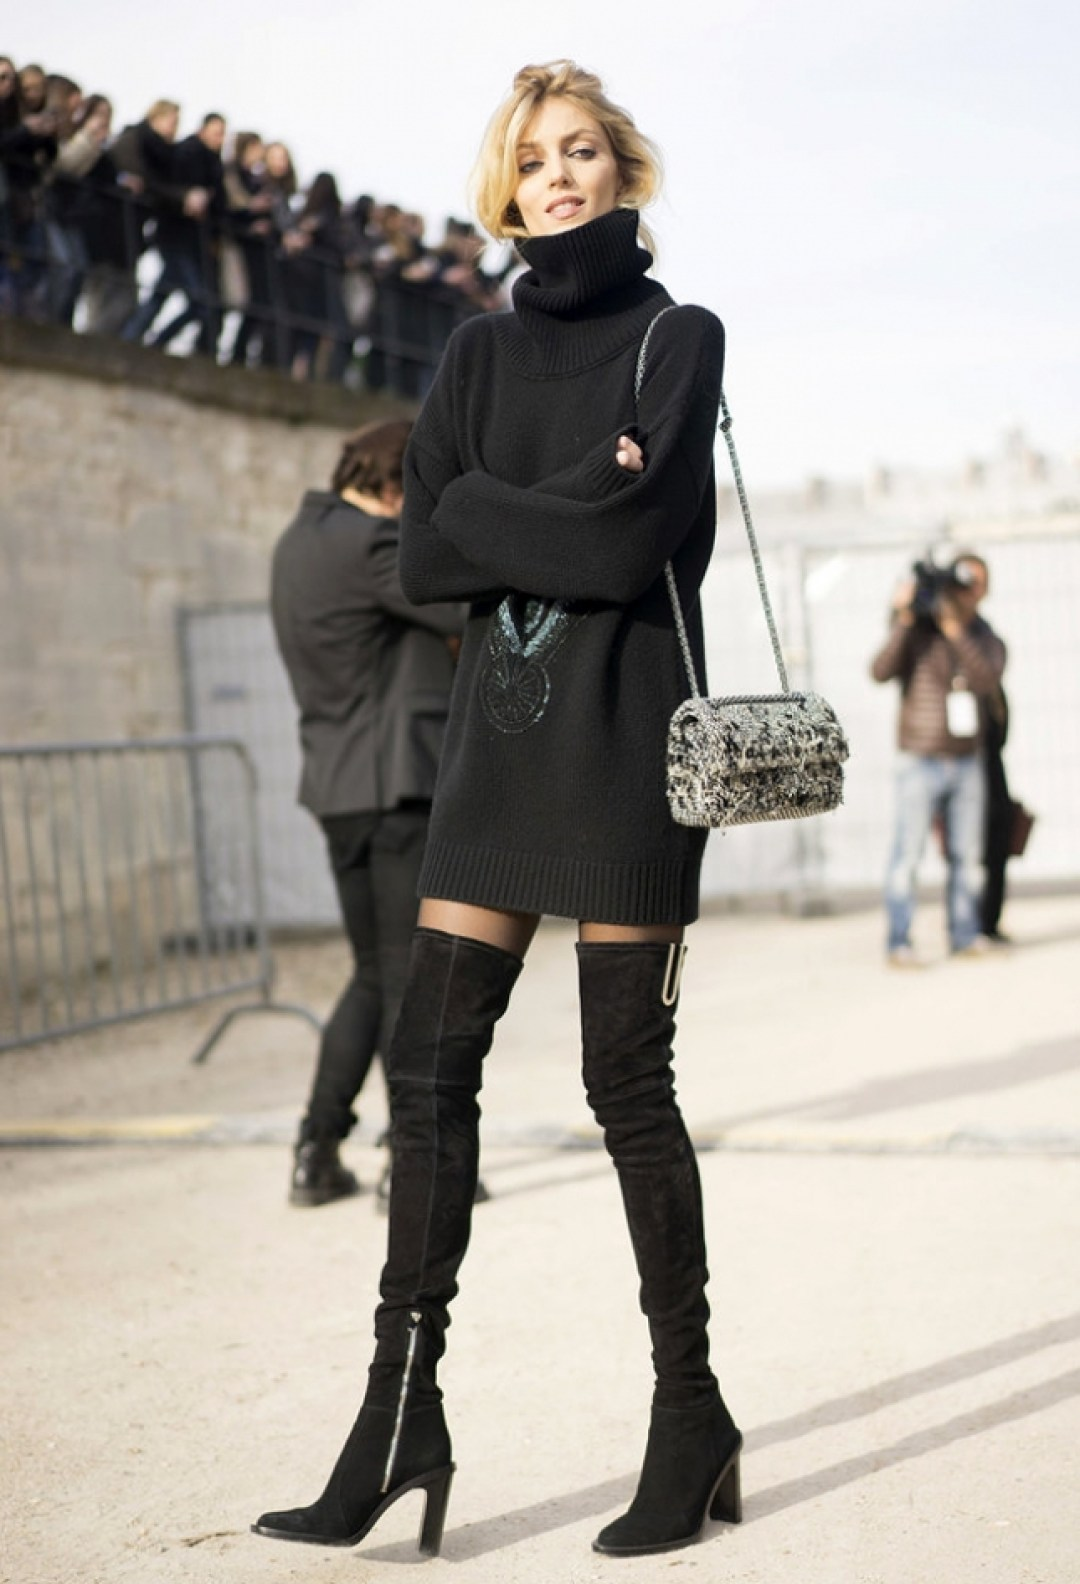 Knit dress thigh high boots wear dresses in winter